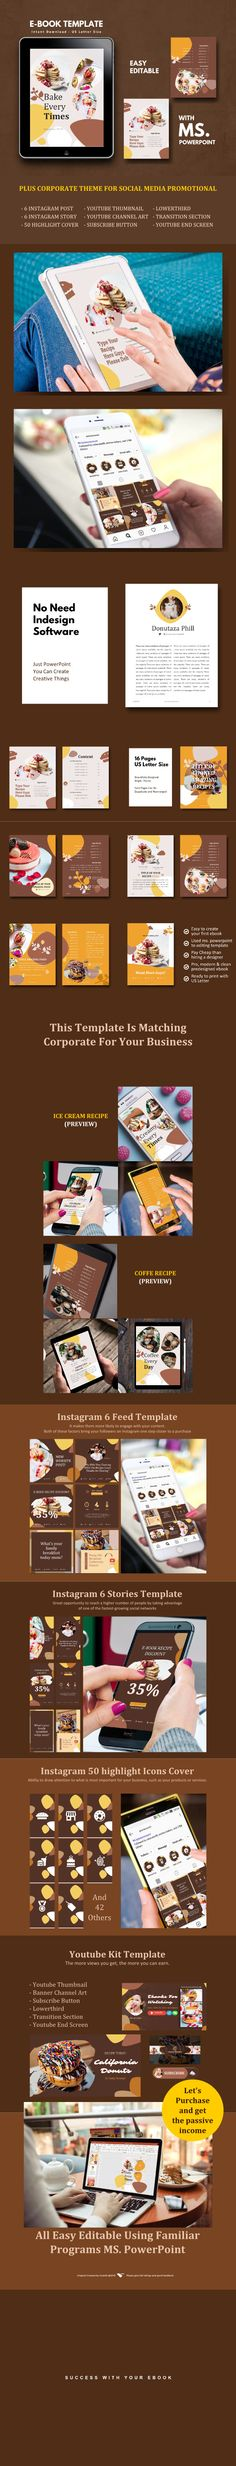 Buy Recipe Book eBook Template by rivatfauziandteams on GraphicRiver. ★ Get 9 bundle Items sheets ebook design template off discount (life time updates!